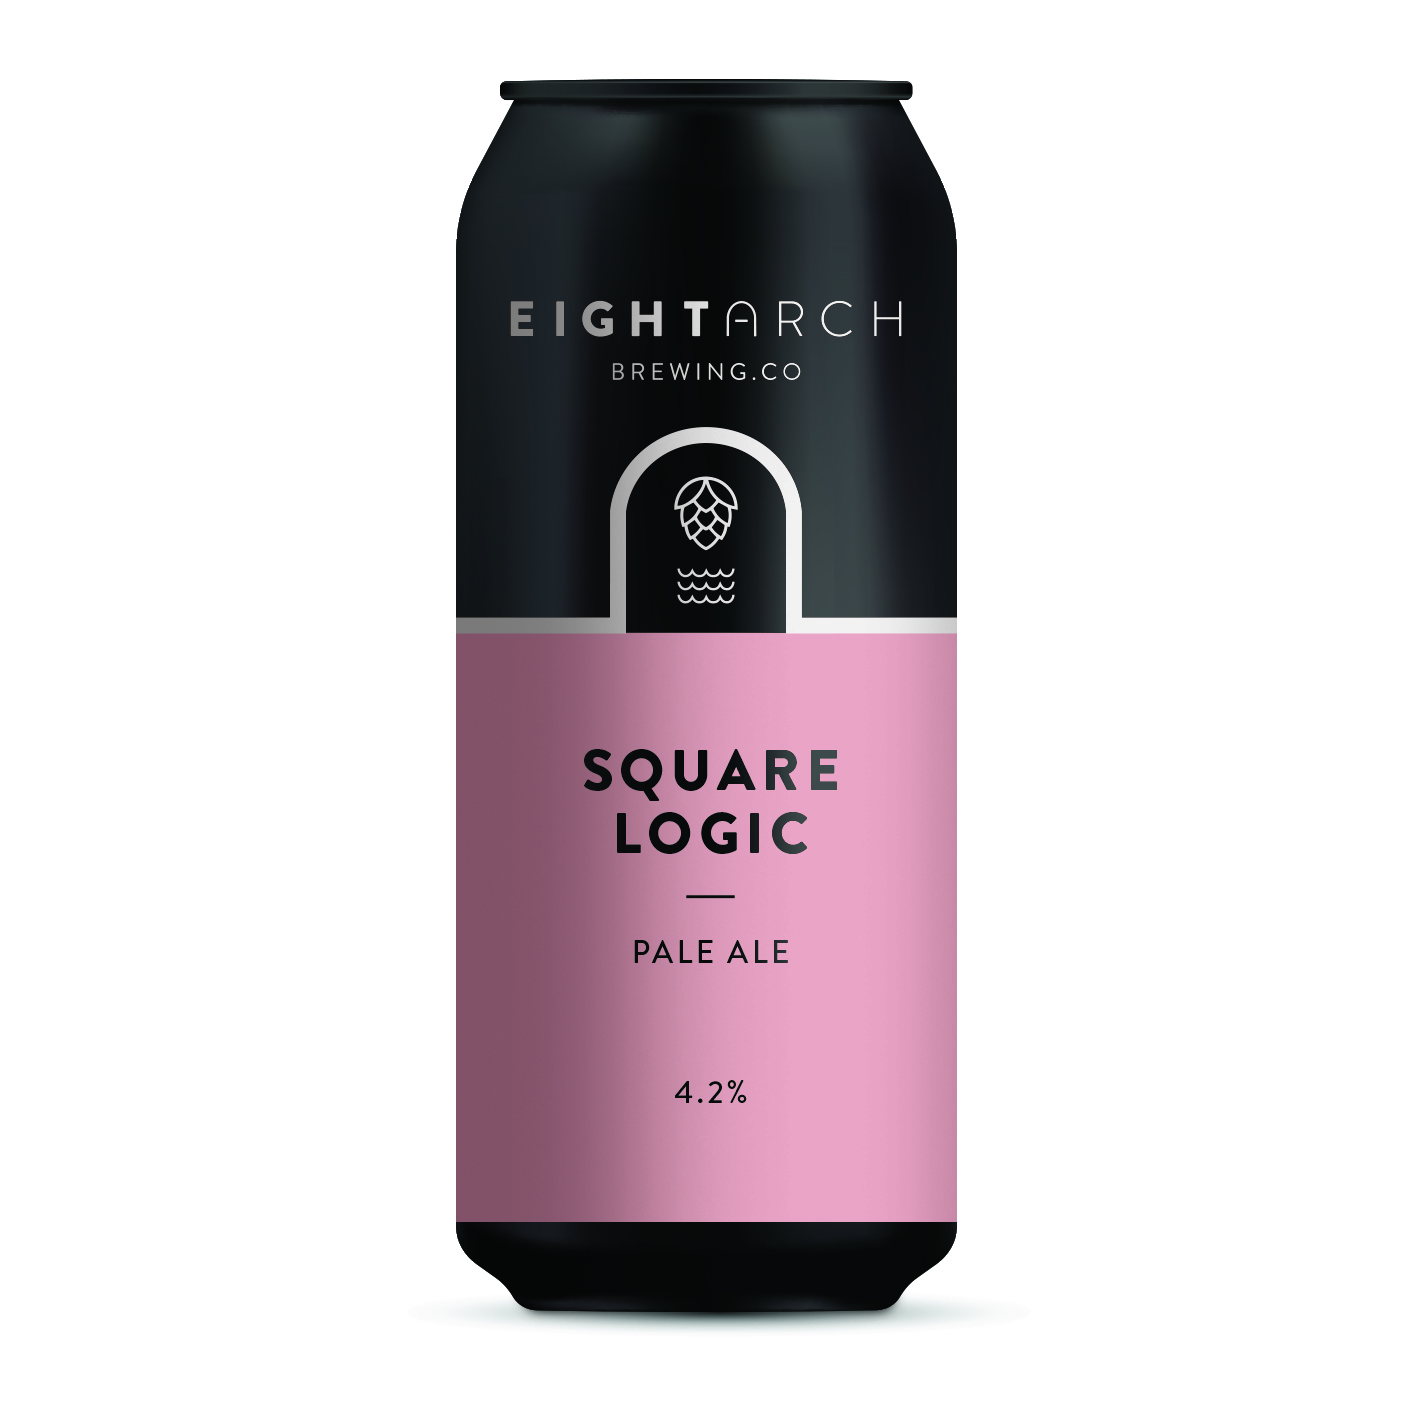 https://www.8archbrewing.co.uk/wp-content/uploads/2020/09/SquareLogic_440ml-can_white.jpg